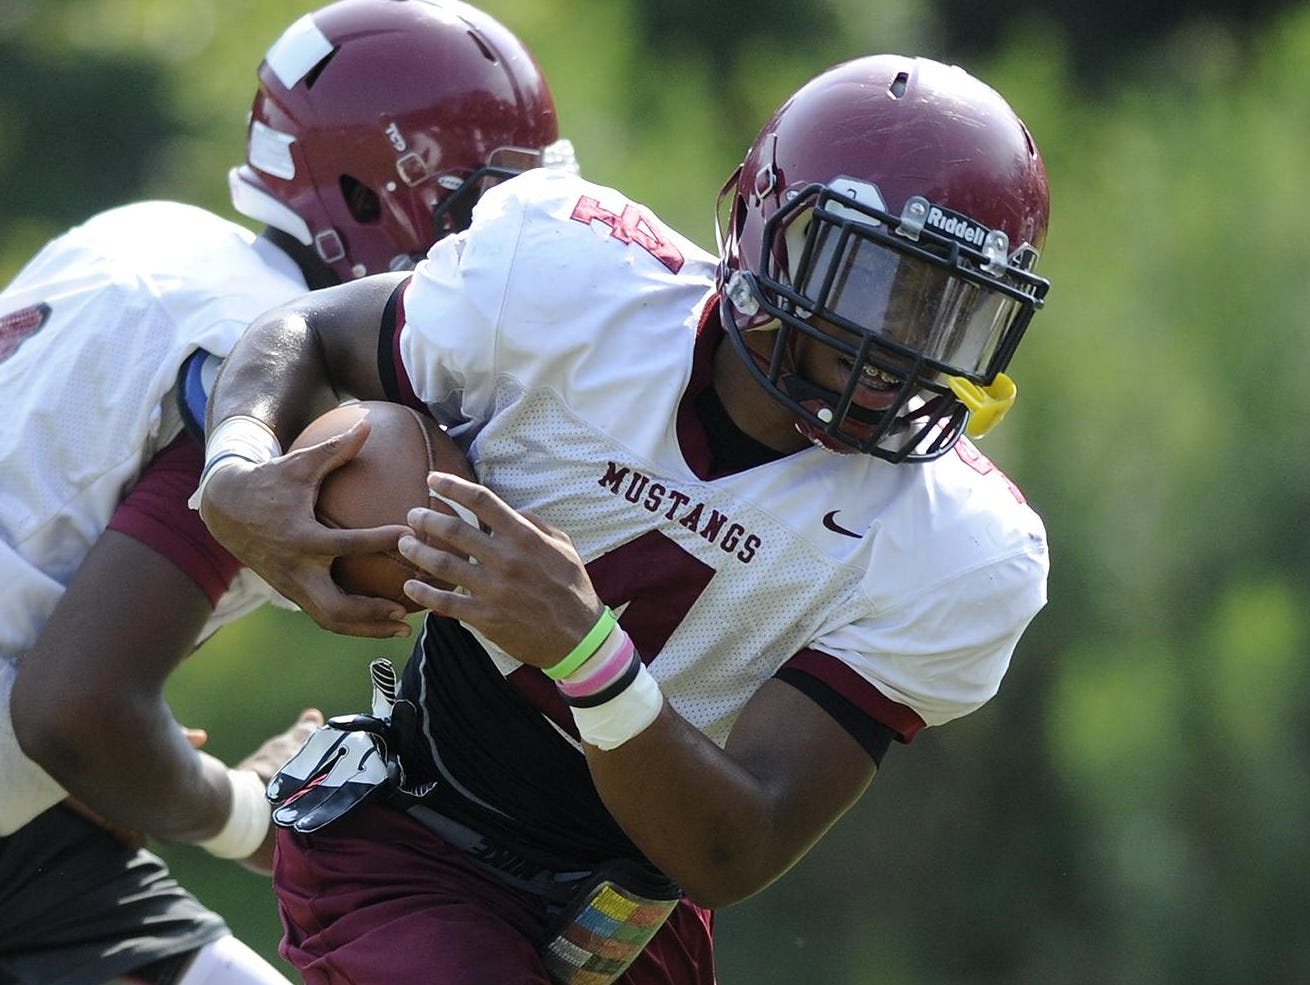 B.J. Smith, shown during an August 2014 practice, helped Stanhope Elmore qualify for a national 7-on-7 tournament Friday.